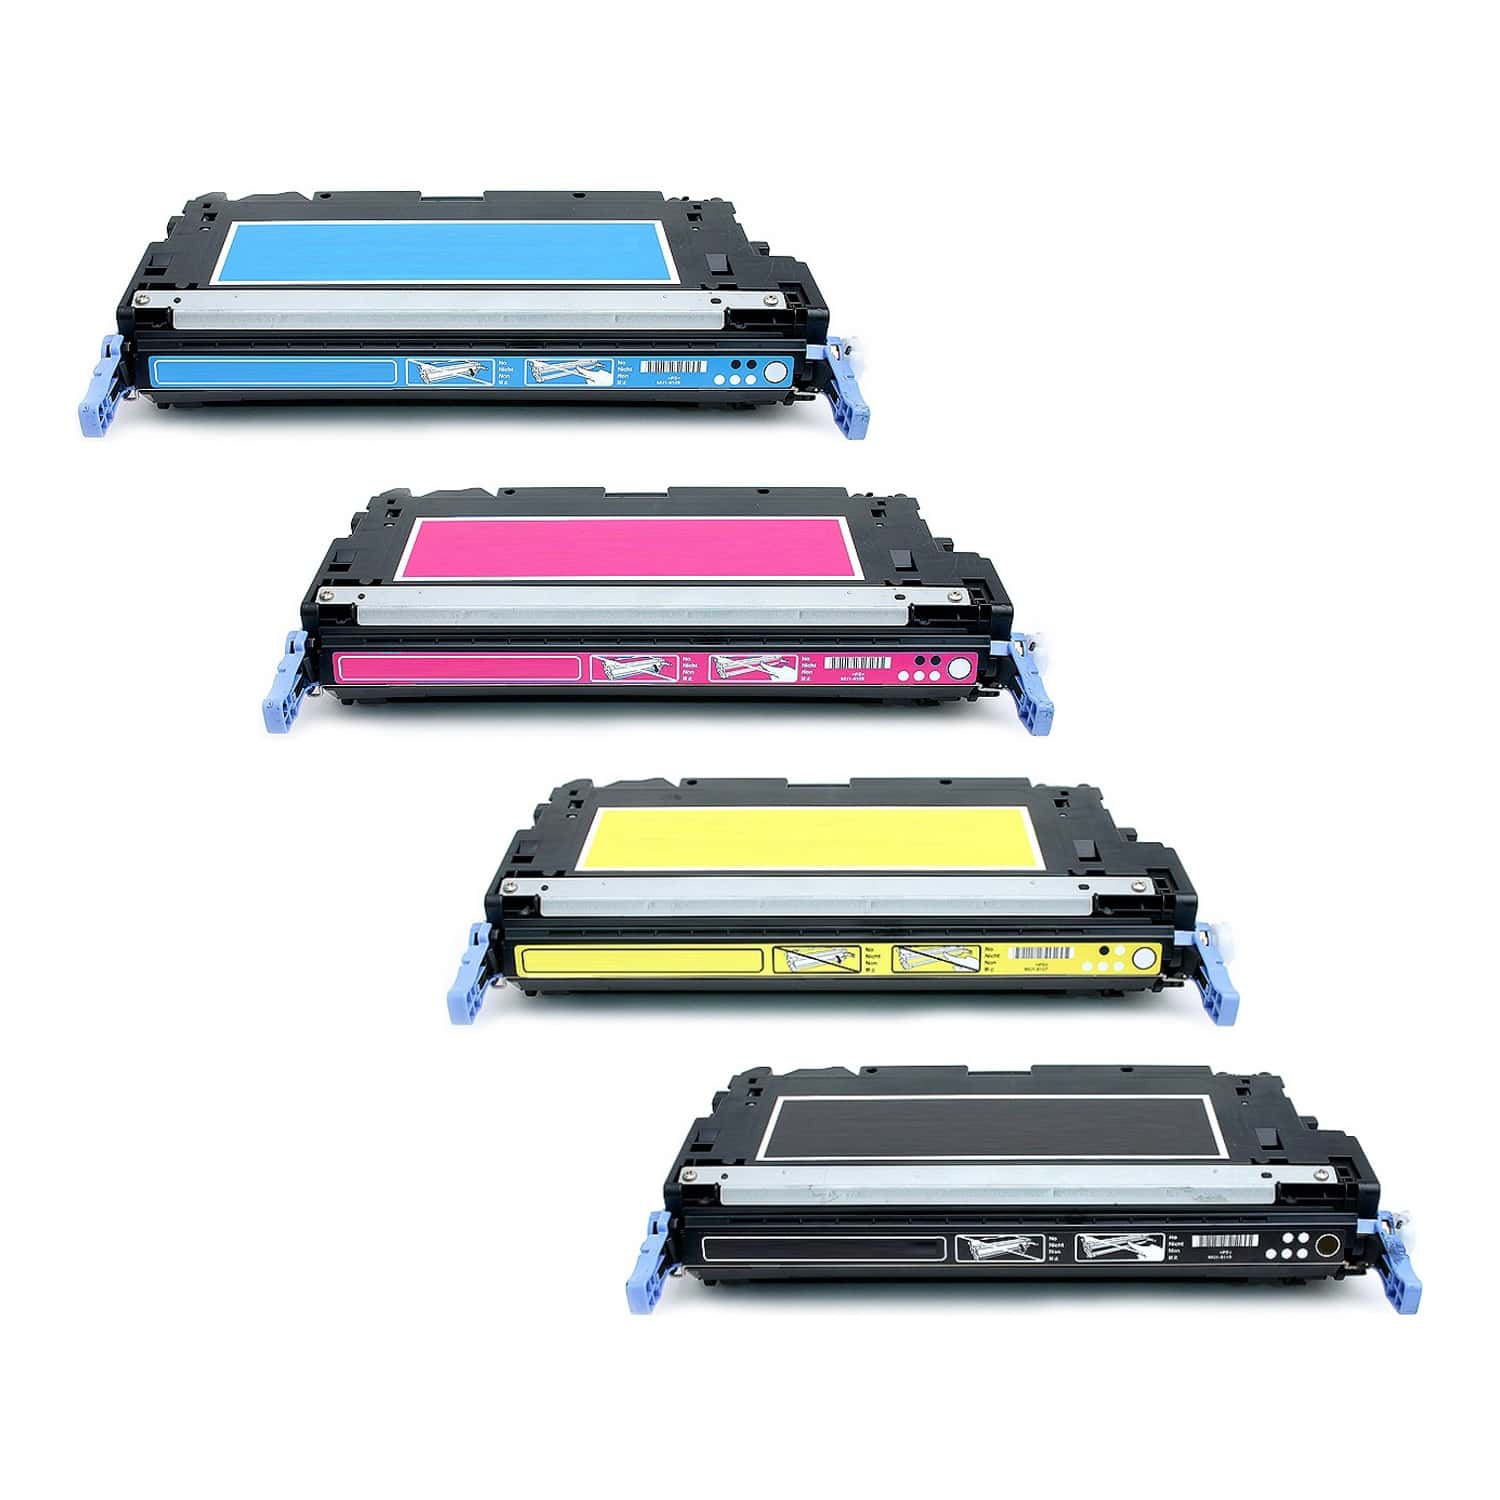 Remanufactured Canon 117 Toner Pack - 4 Cartridges